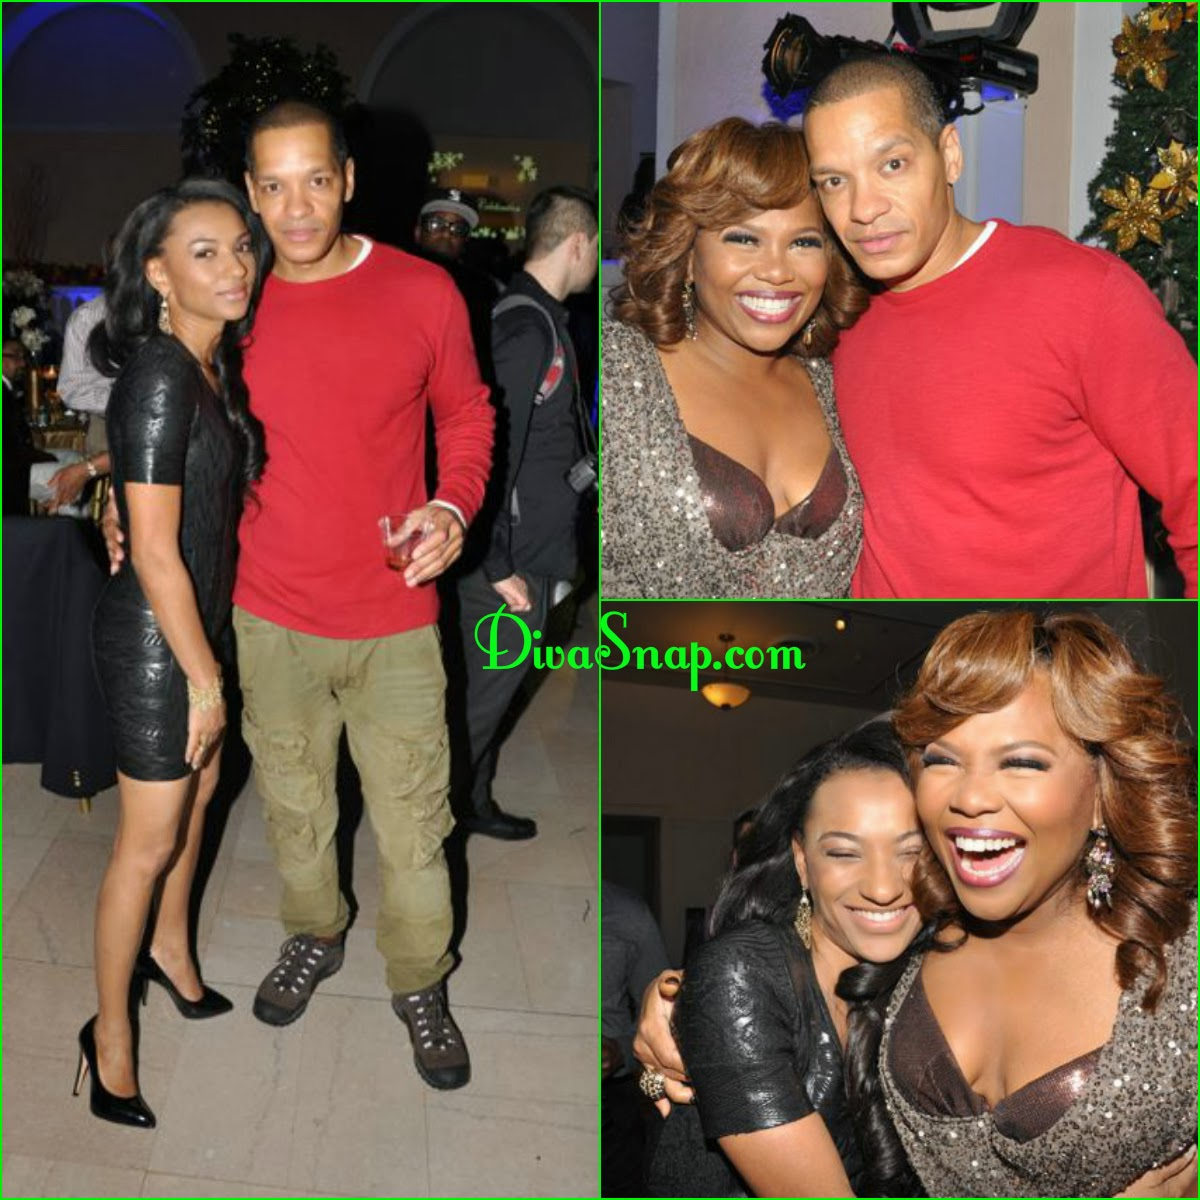 TARA & PETER GUNZ WAS ALL UP IN THERE TOGETHER - DivaSnap.com